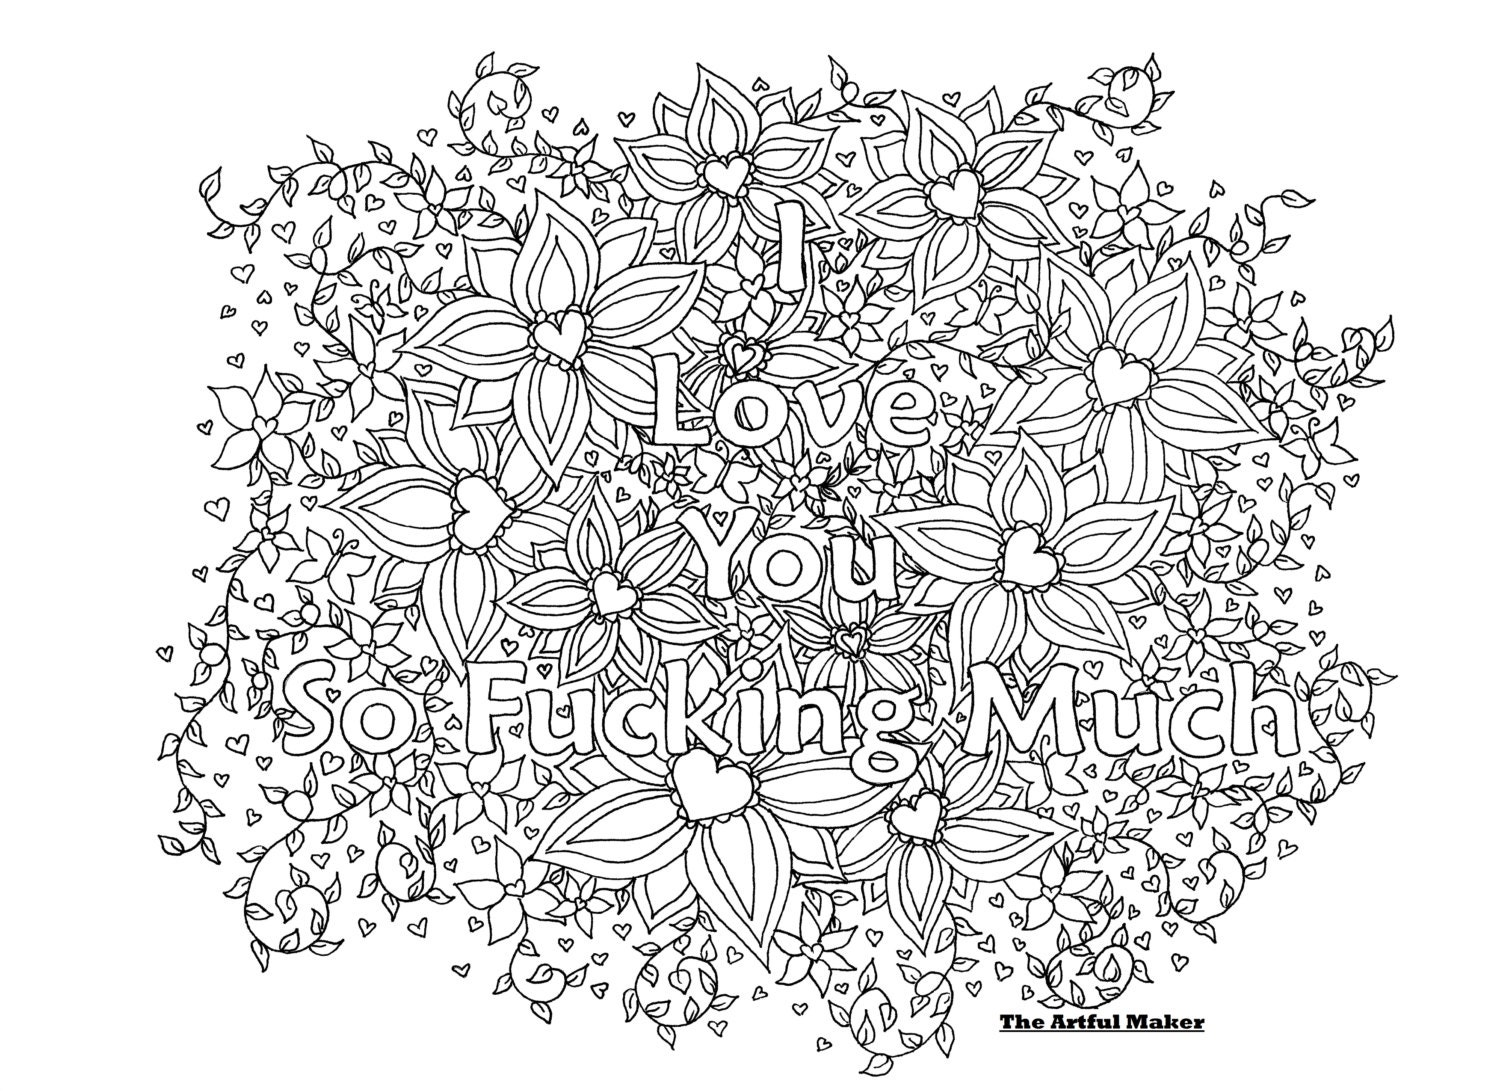 Uncategorized I Love You Coloring Page i love you so fucking much adult coloring page by the artful